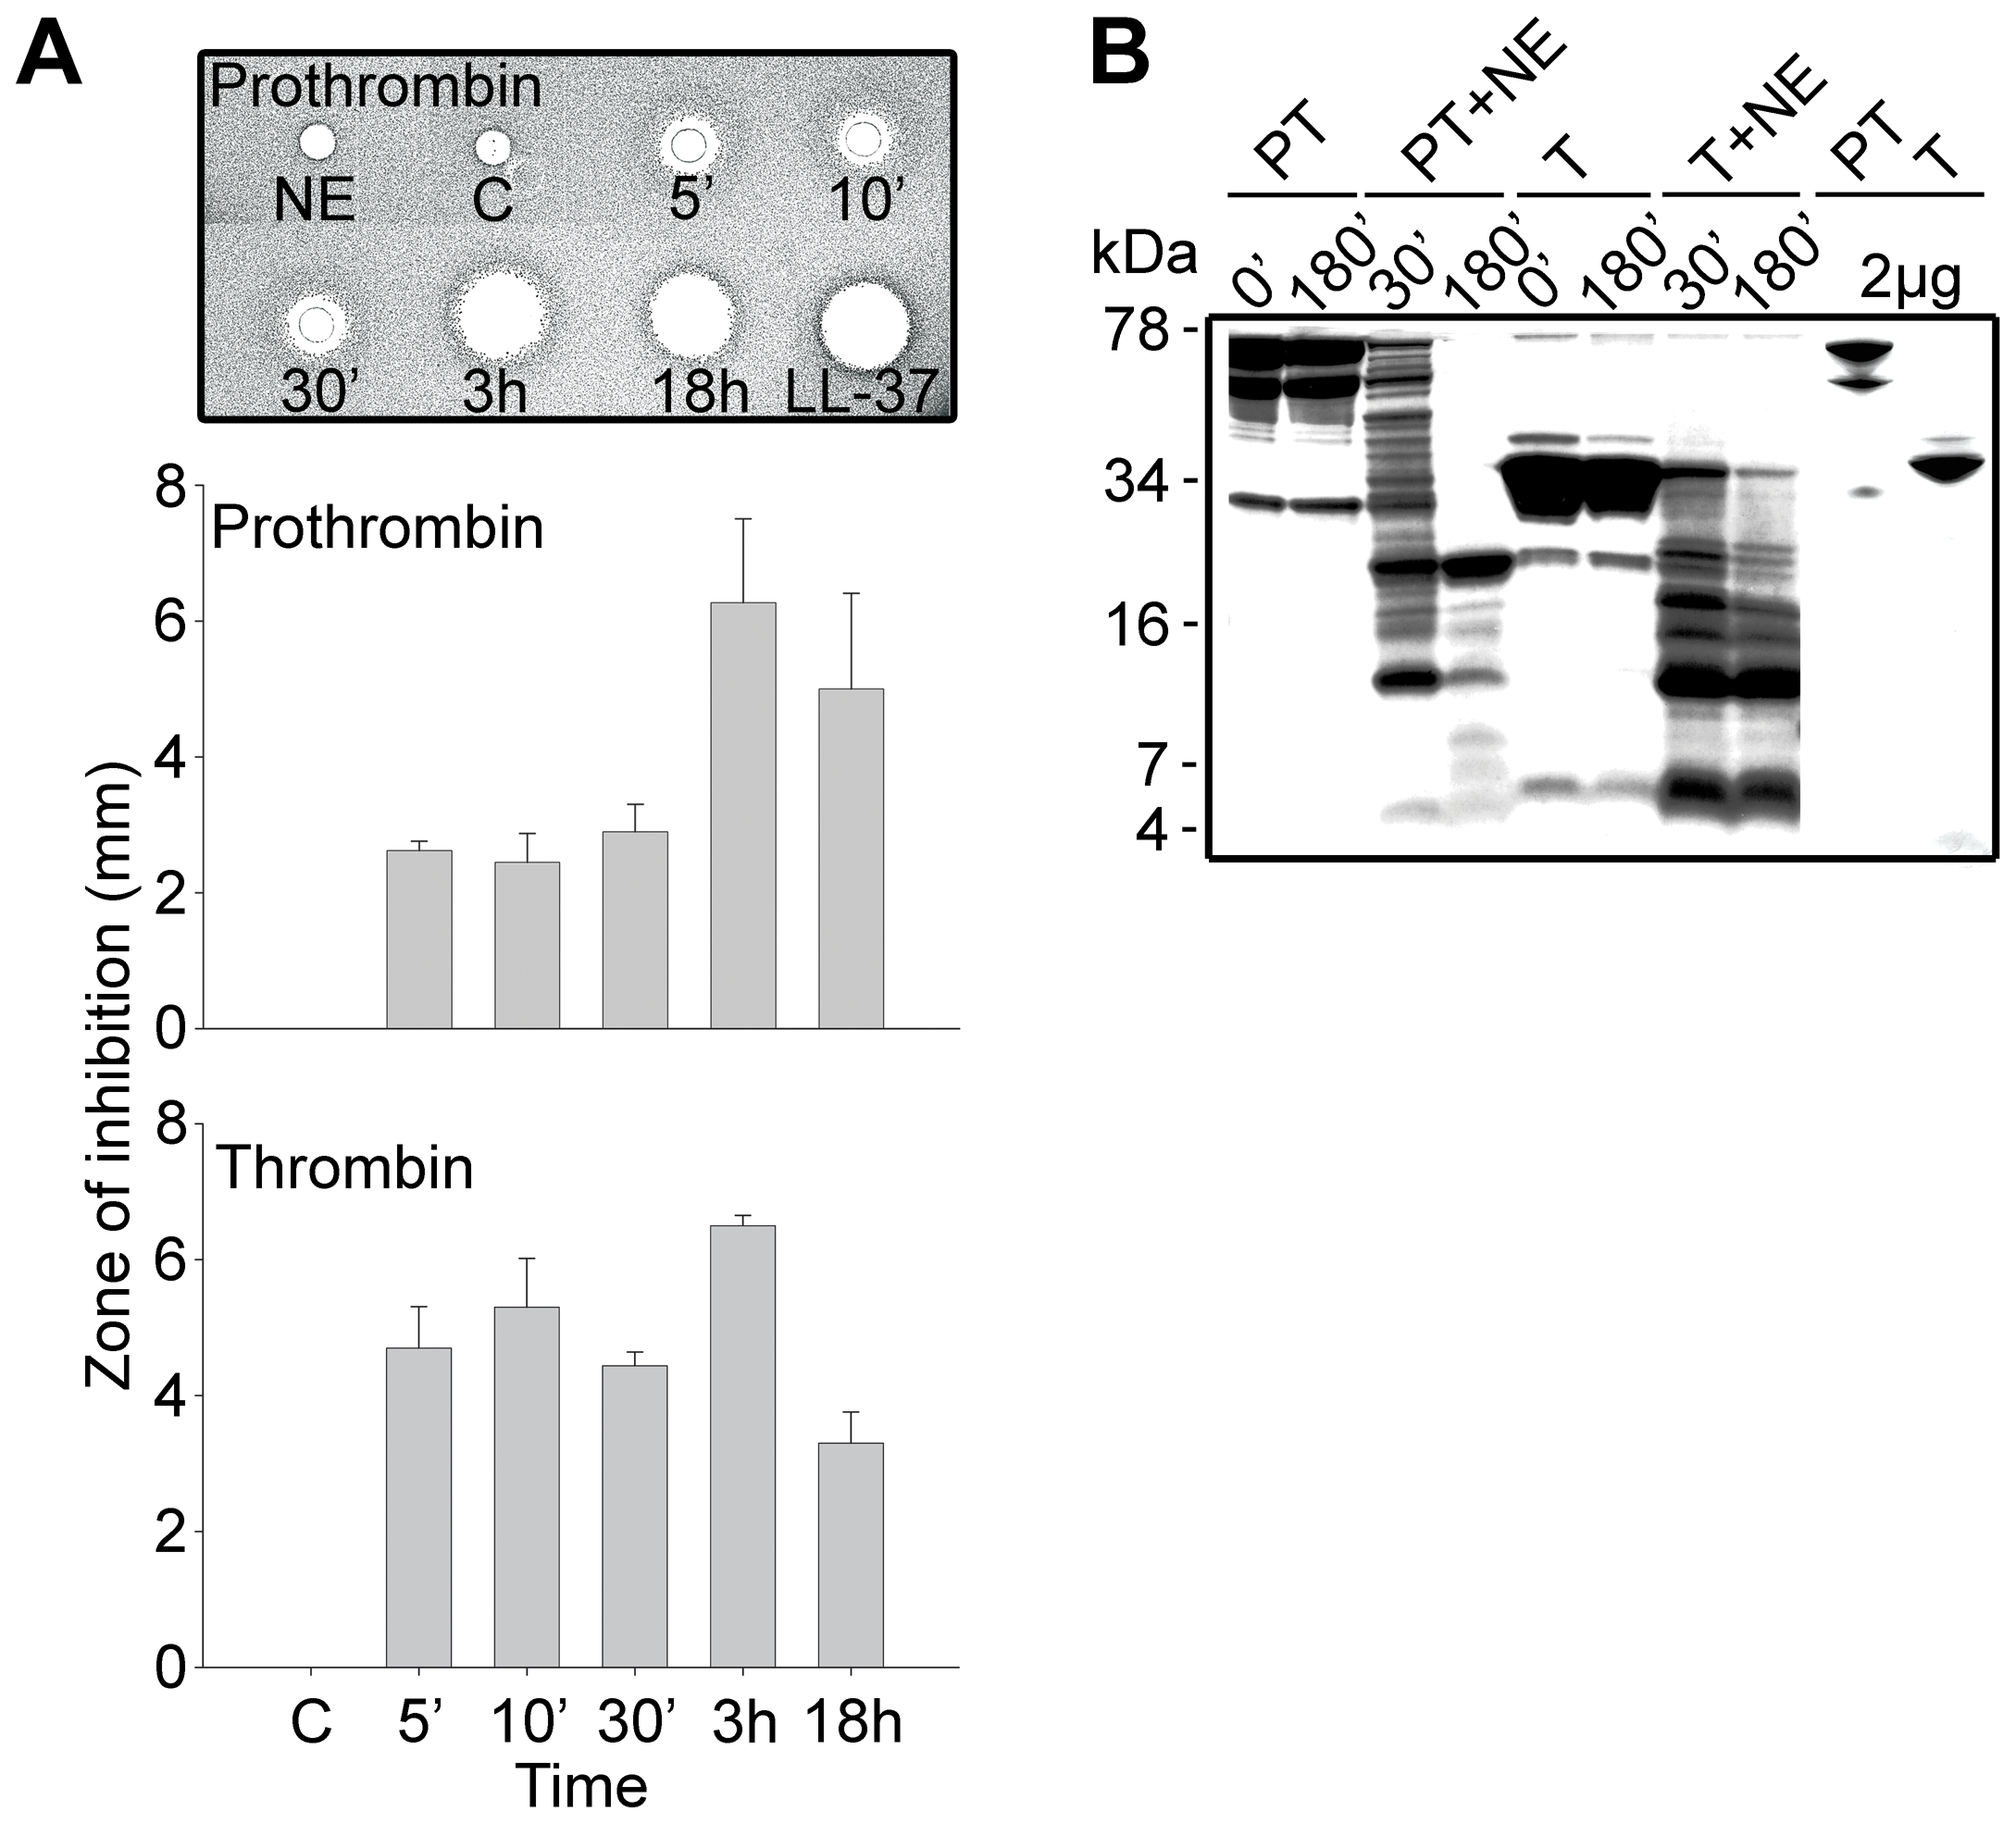 Generation of antimicrobial peptides by degradation of prothrombin and thrombin.